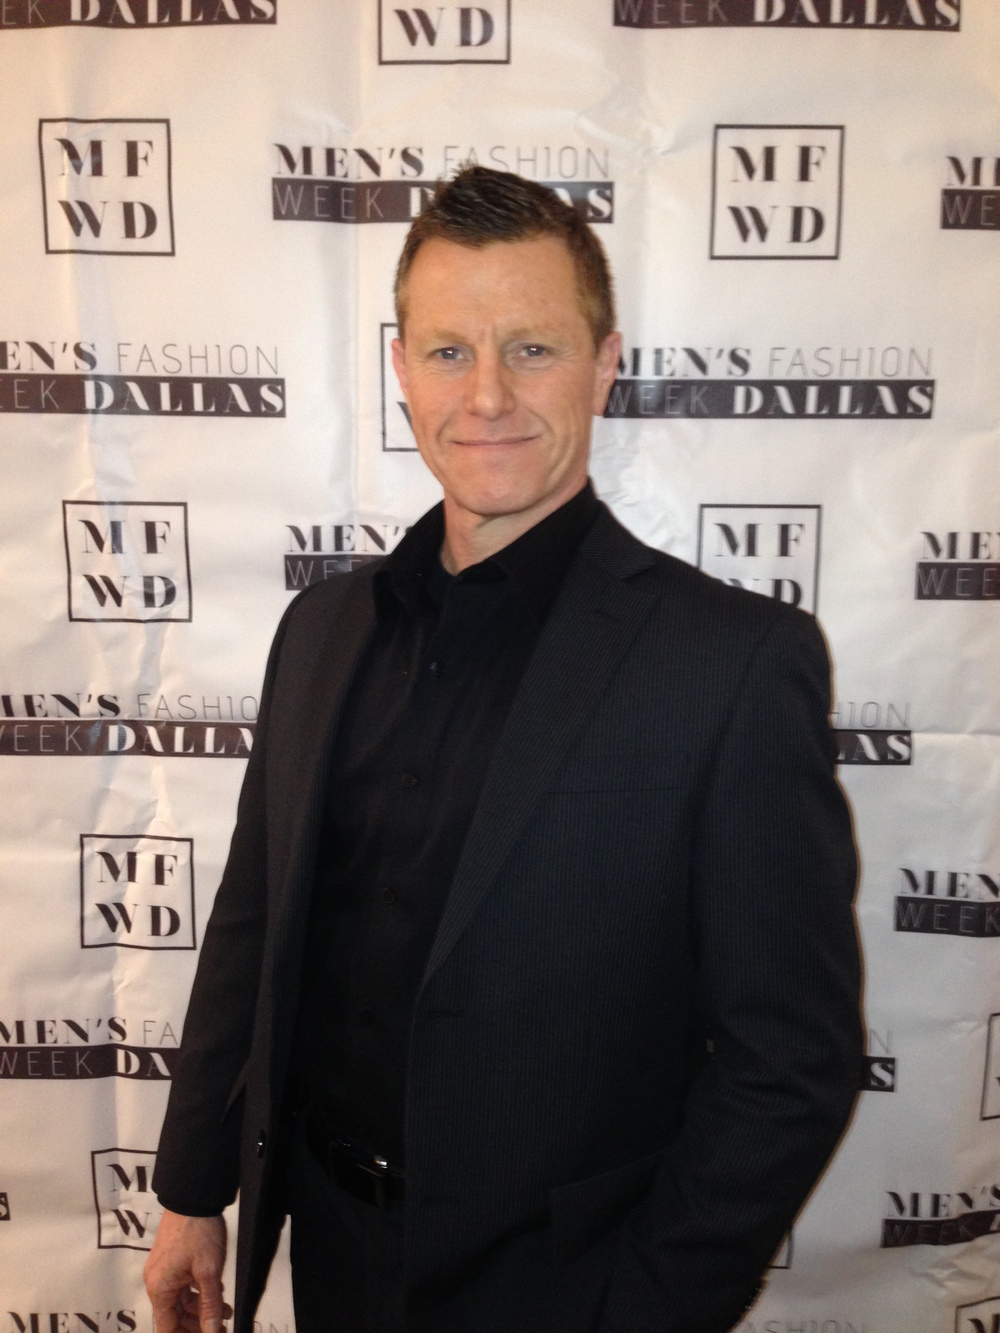 Car Leasing Concierge Owner Paul Maloney at Mahiri Takai Men's Collection Debut at NYC Fashion Week